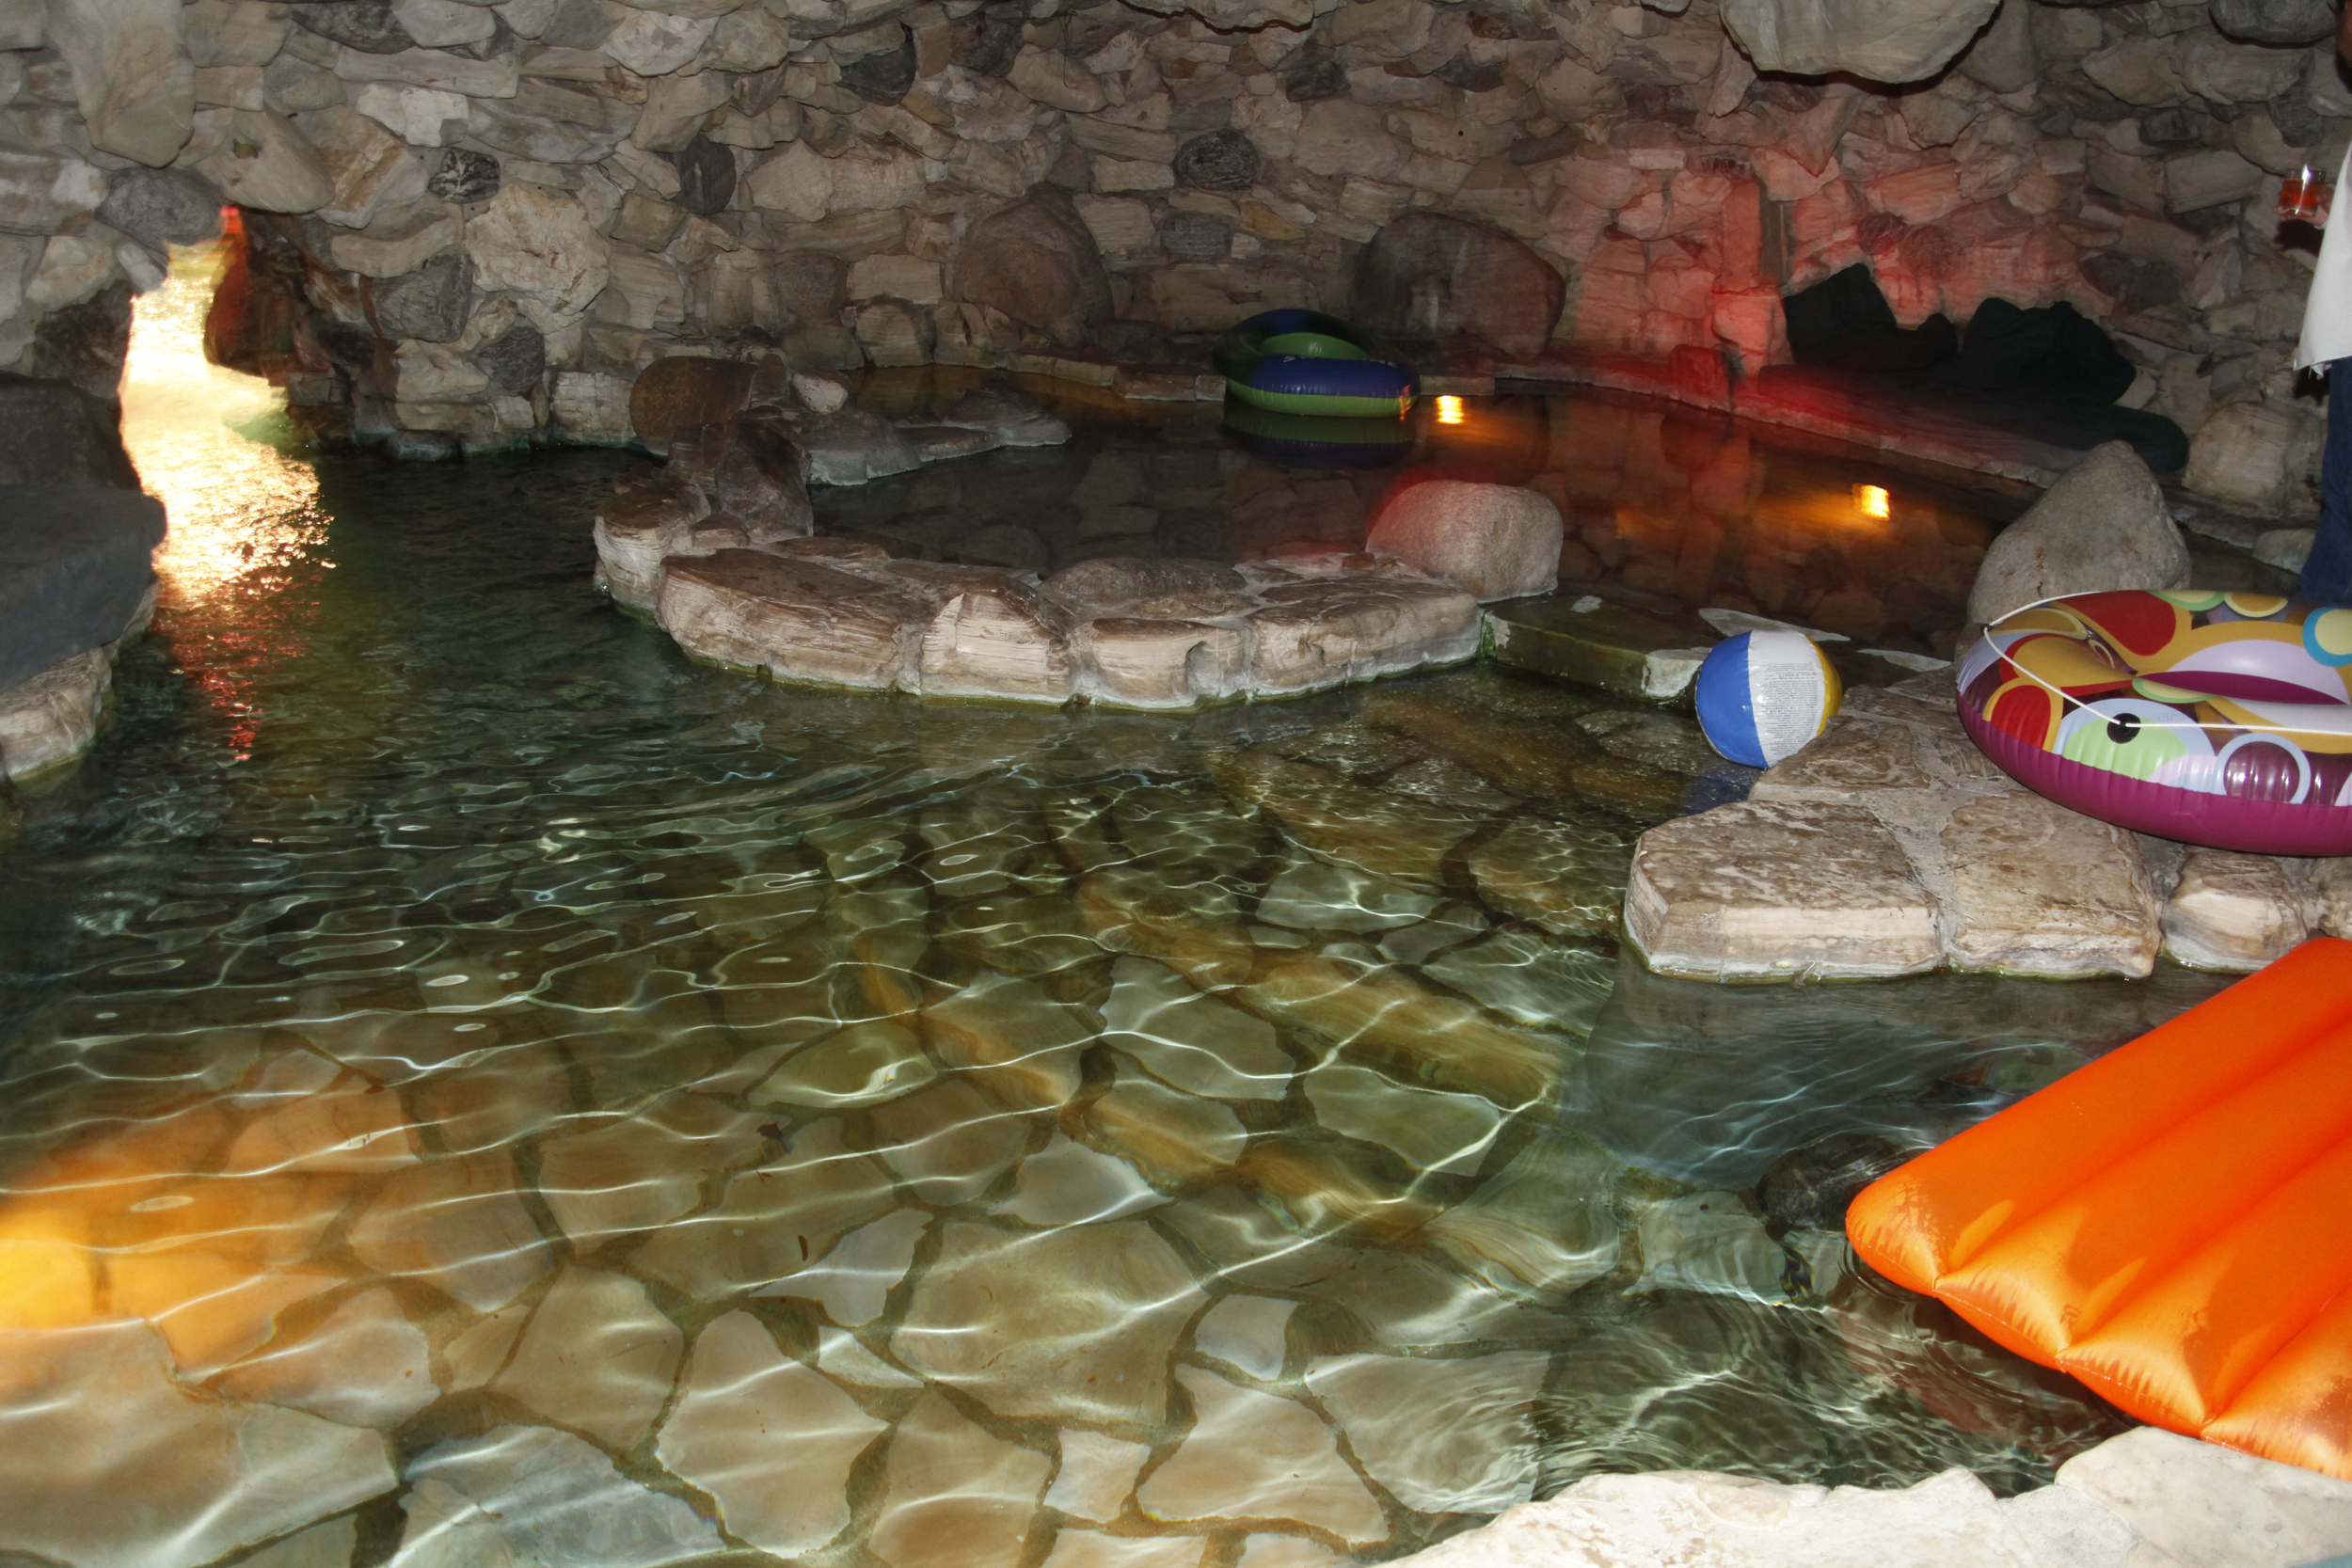 The famous Playboy grotto